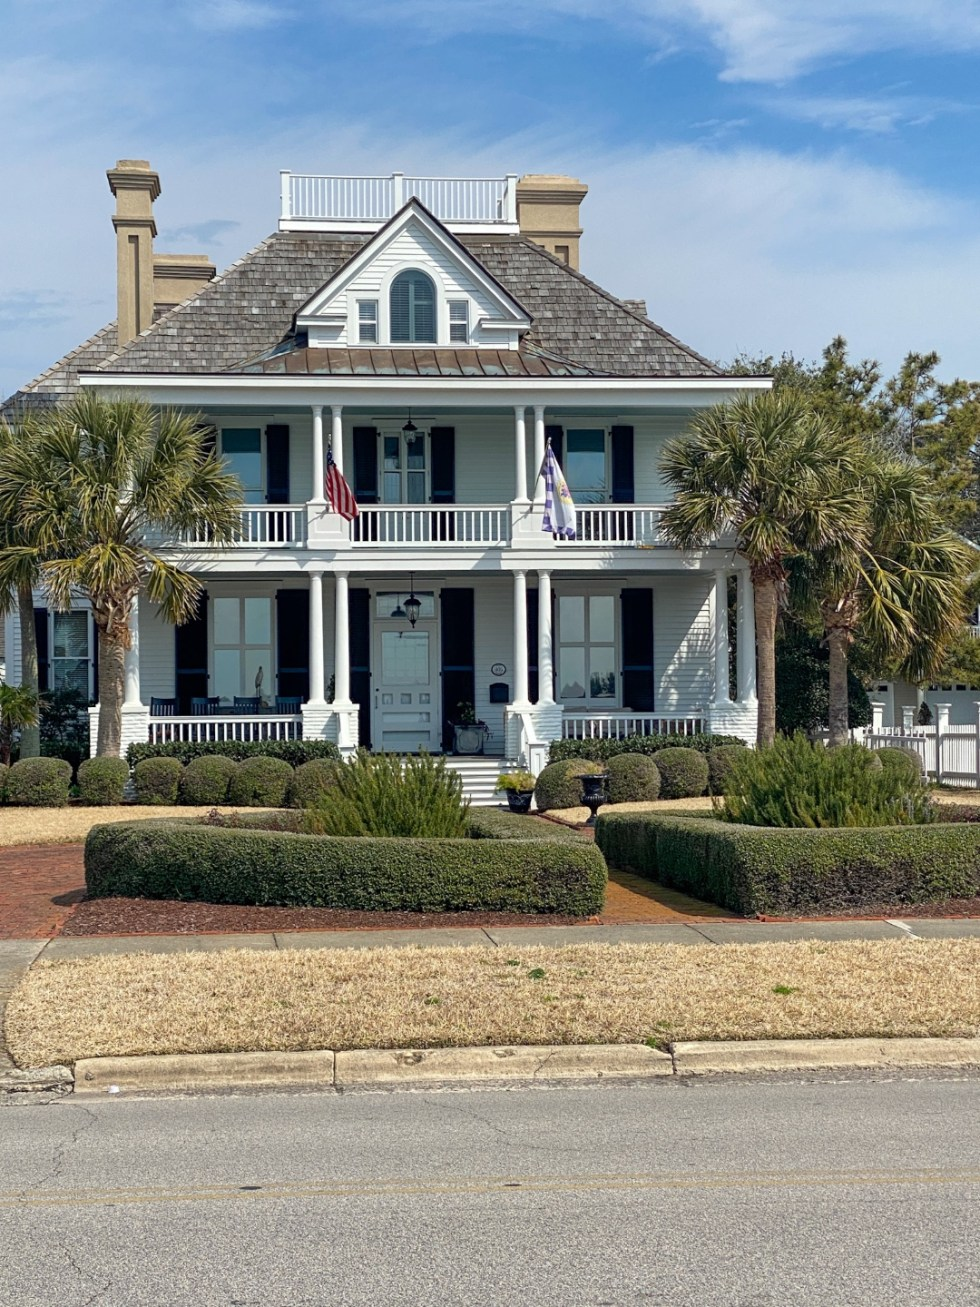 Weekend Travel: The Best Things to Do in Beaufort NC in 48 Hours - I'm Fixin' To - @imfixintoblog |Things to Do in Beaufort NC by popular NC travel blog, I'm Fixin' To: image of a white southern colonial house.